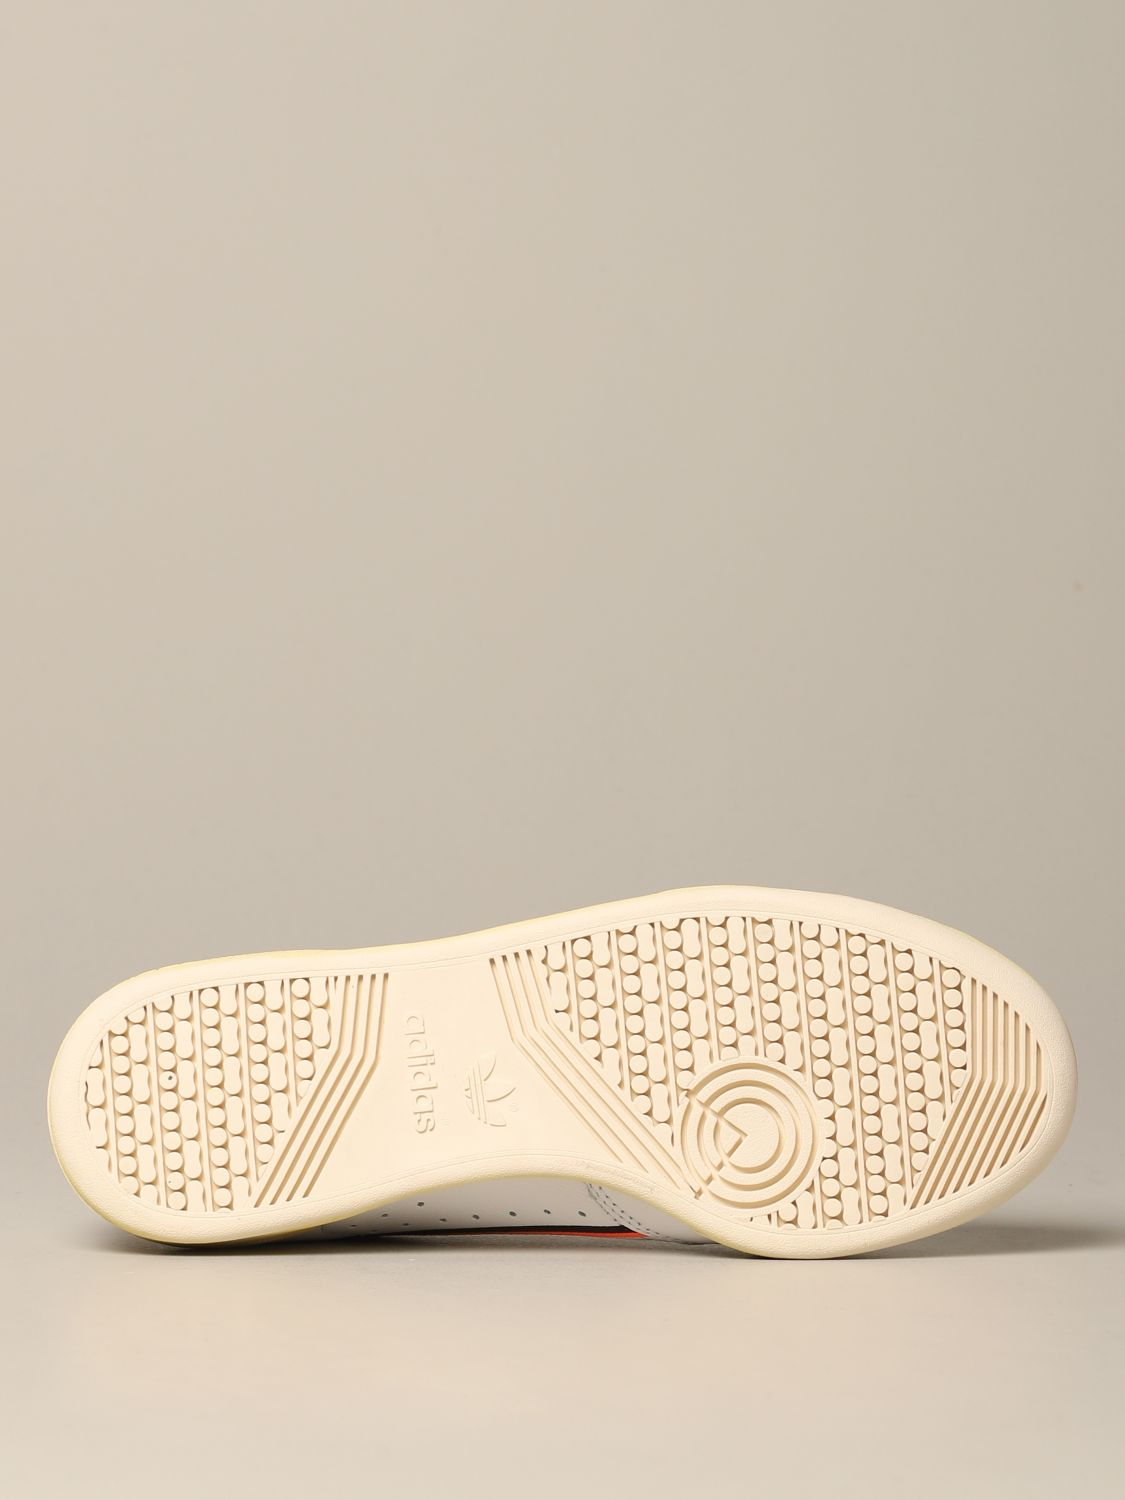 Sneakers Adidas Originals: Sneakers Continental 80 Adidas Originals in pelle bianco 6